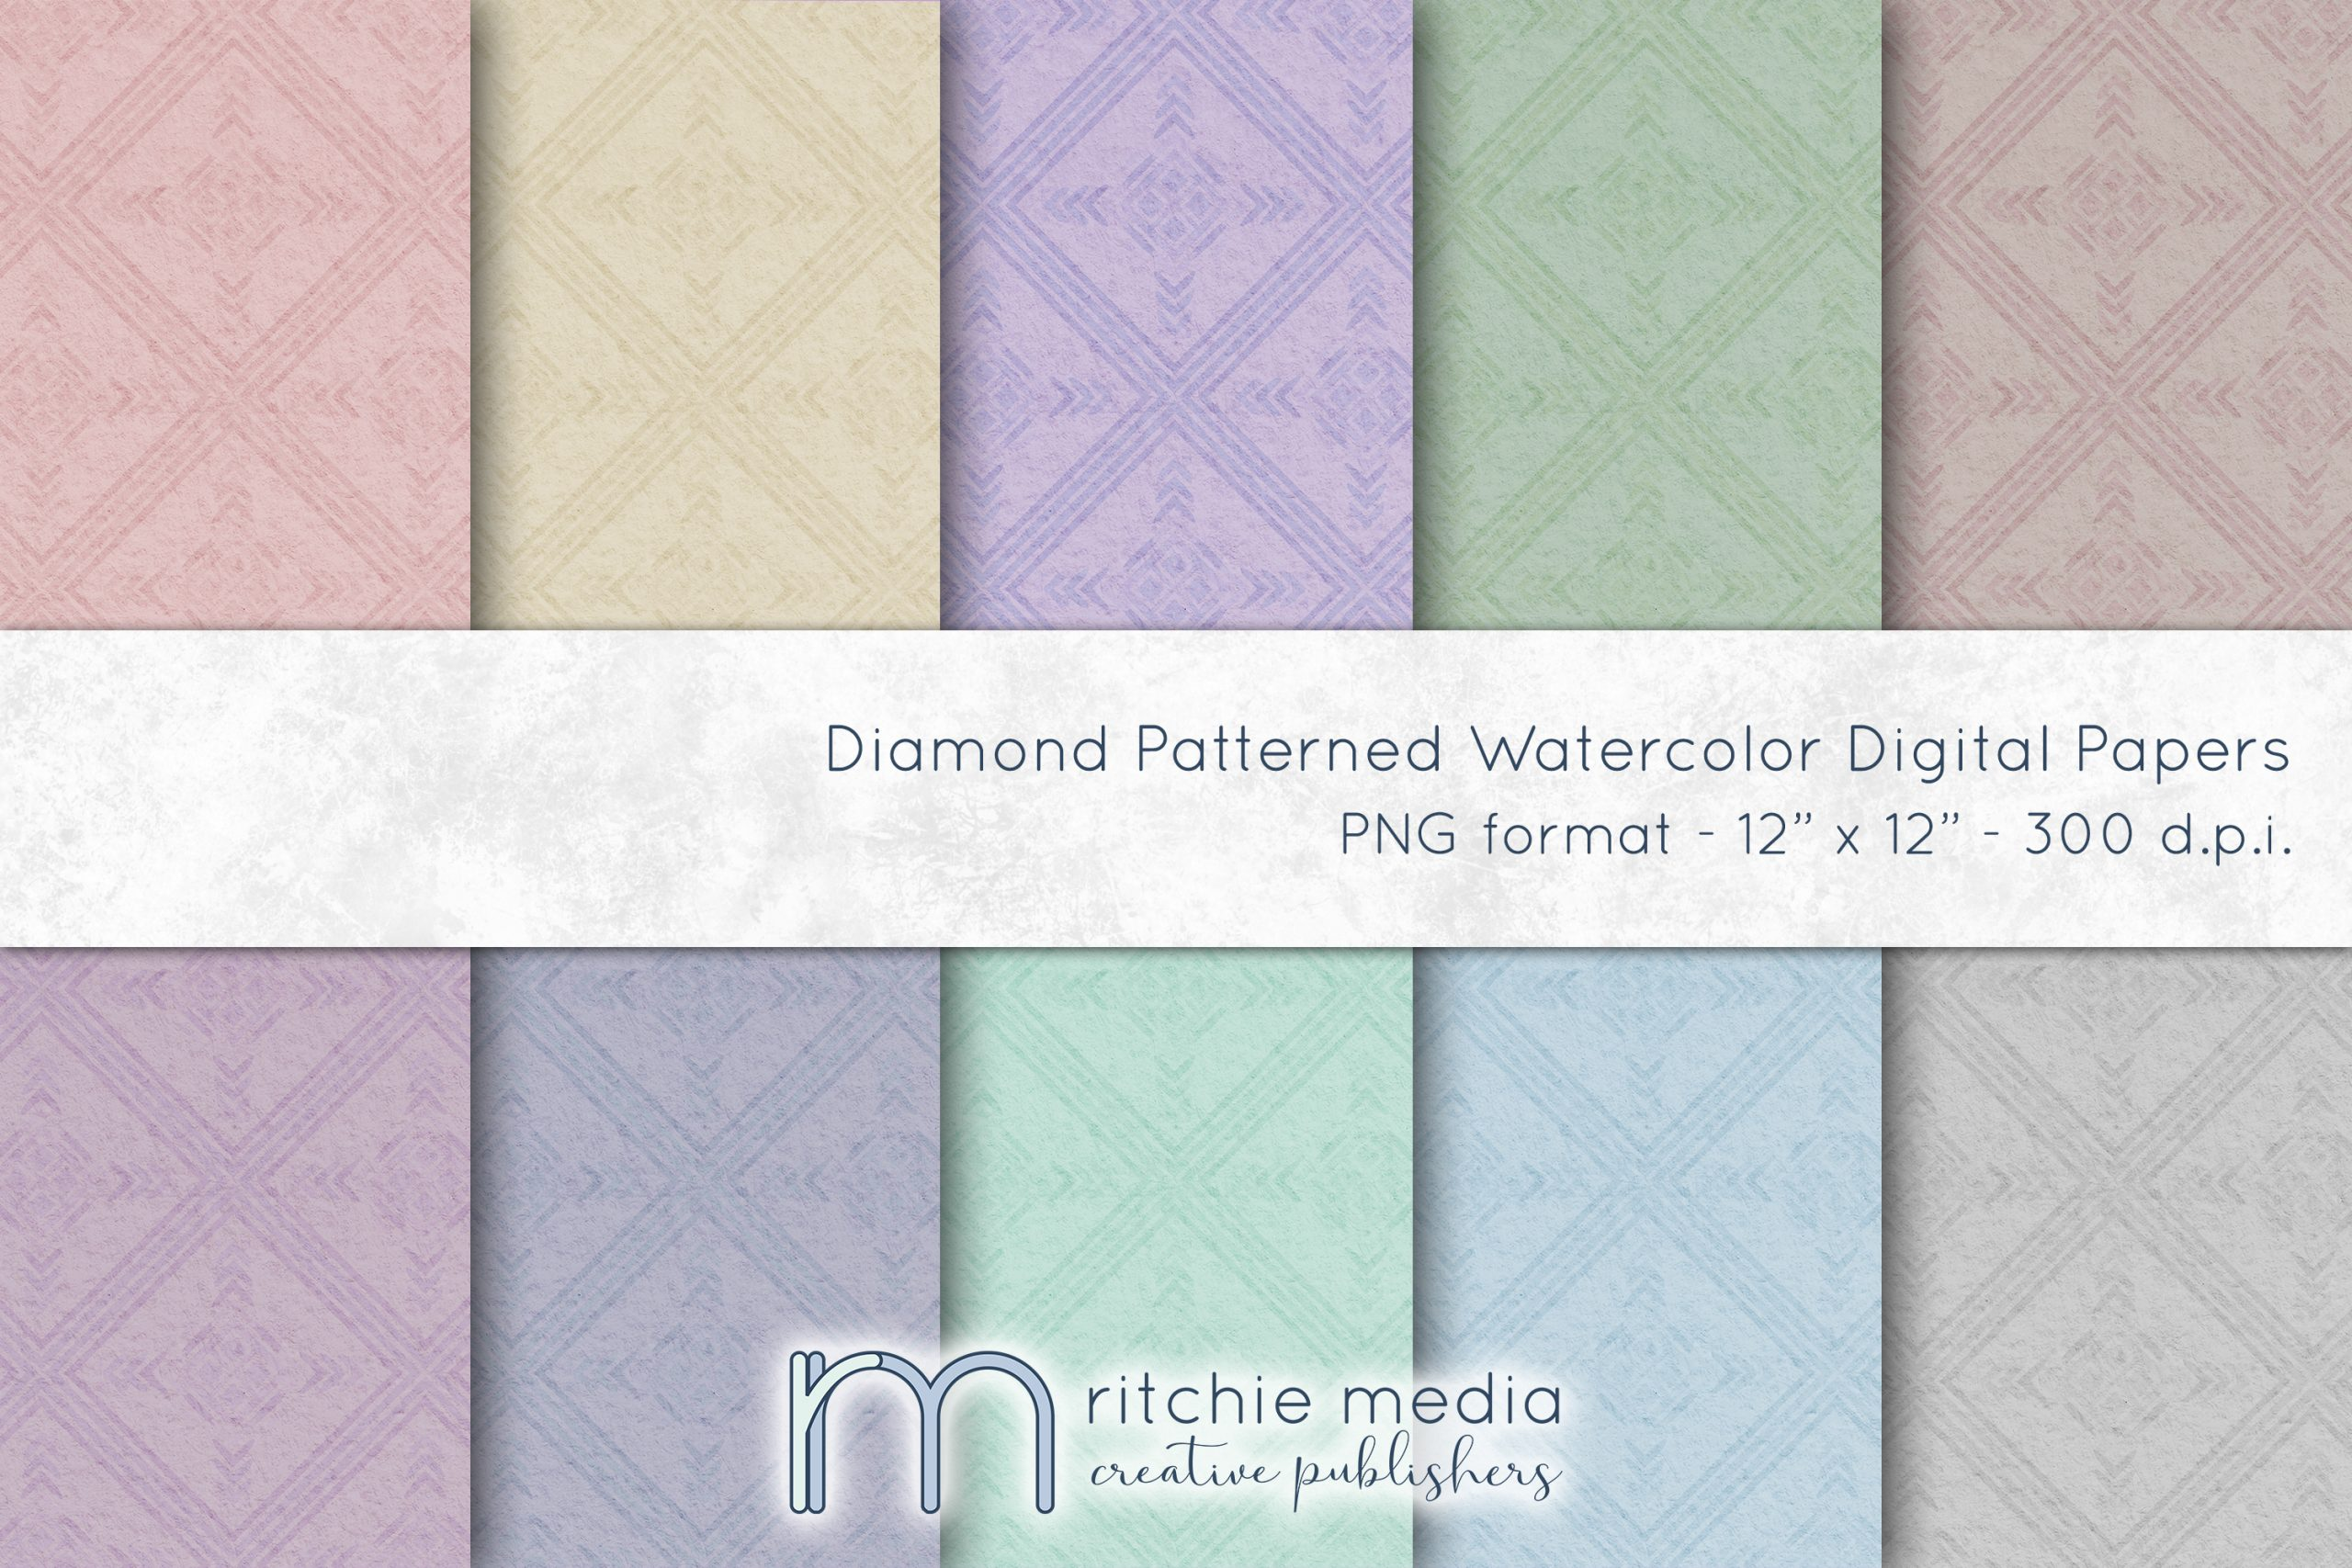 Diamond Patterned Watercolor Digital Papers